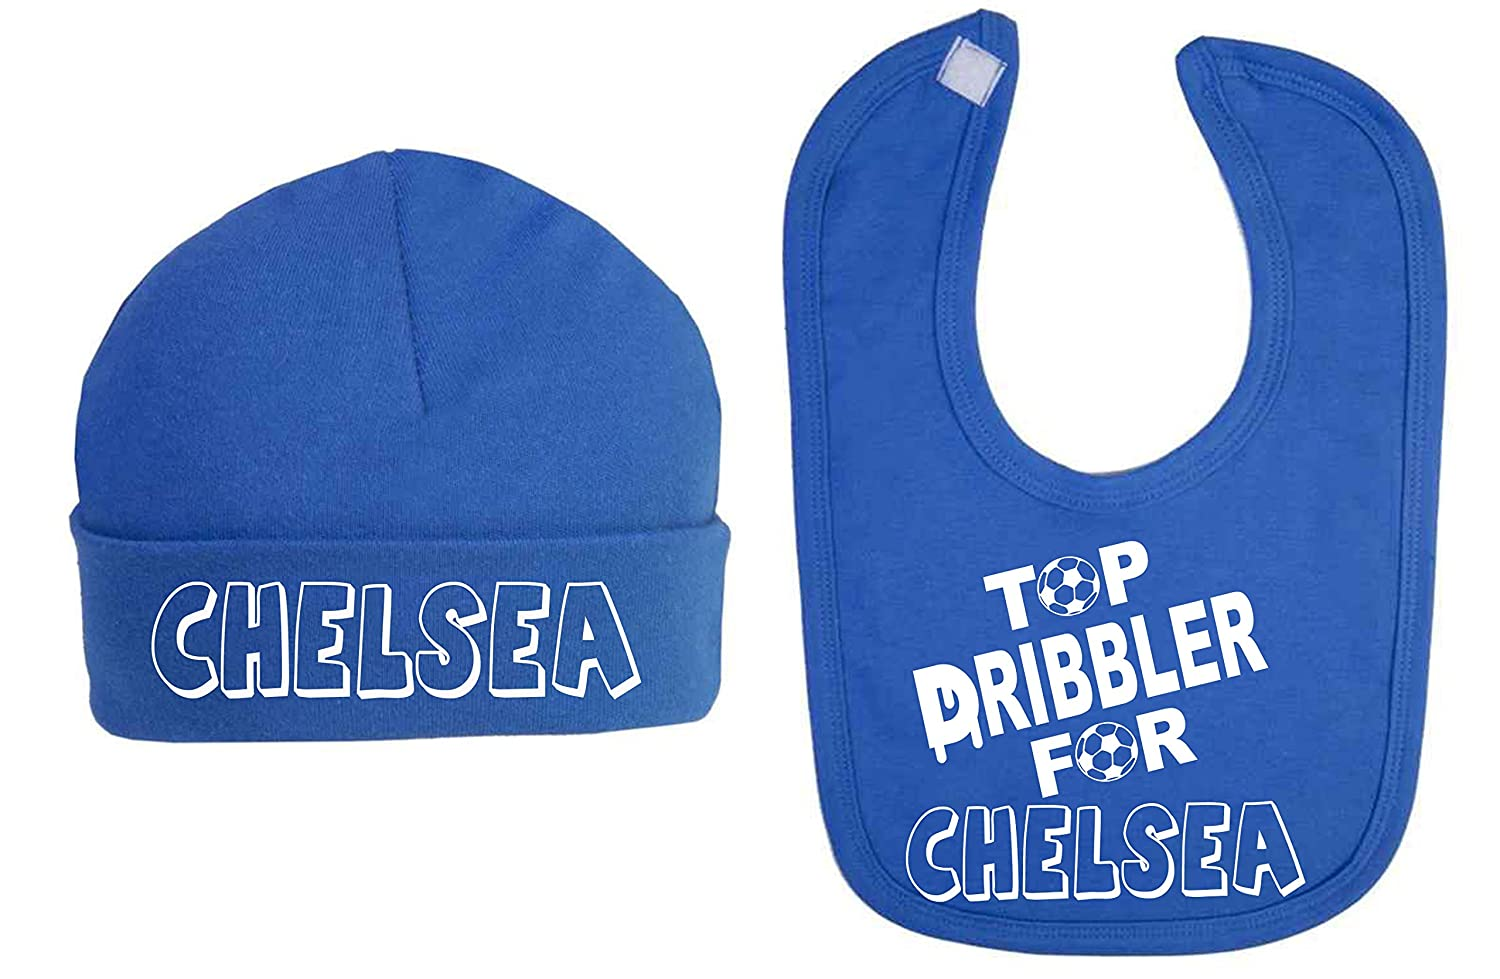 Top Dribbler for Chelsea Baby Hat and Bib Set Baby Shower Gifts Football Lovers Baby Football Top (0-3 Months) ICKLE PEANUT